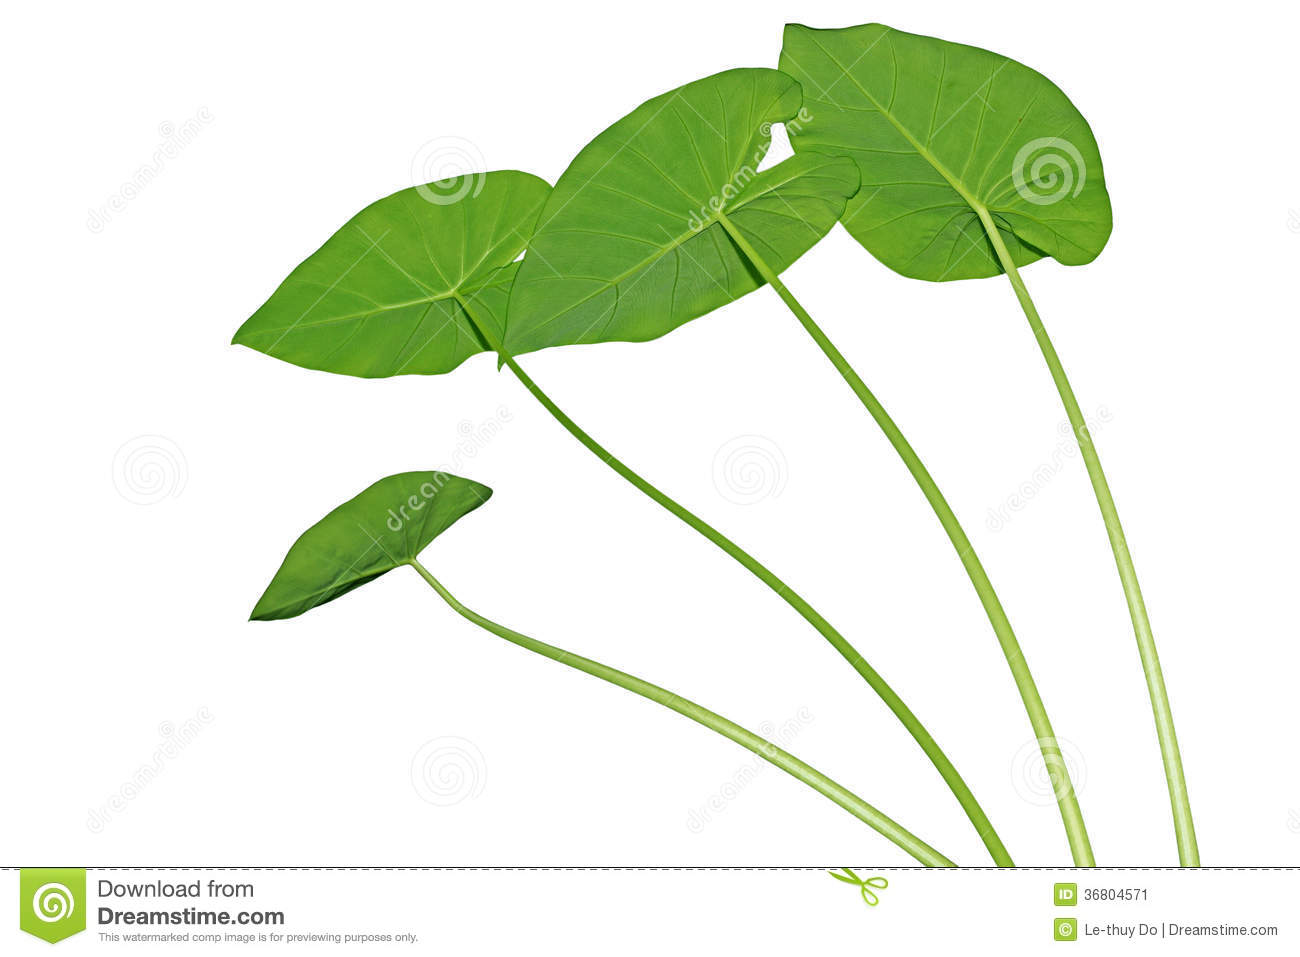 how to cook taro leaves